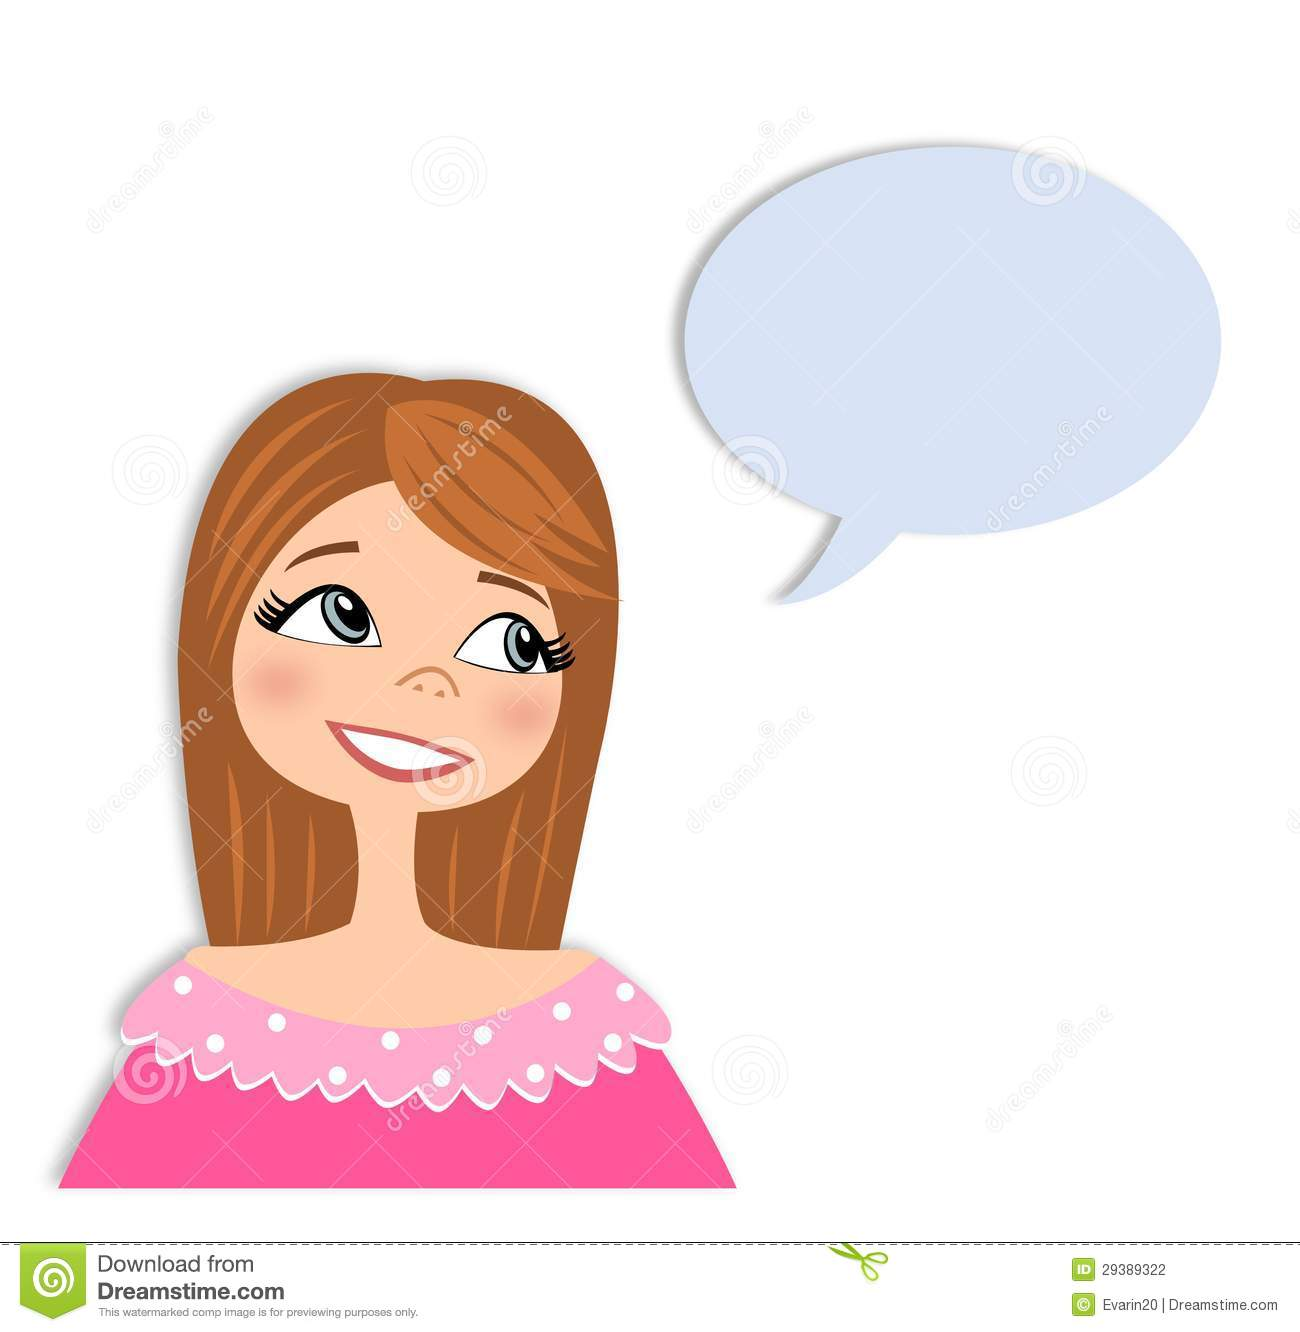 More similar stock images of ` Girl in conversation Cartoon character ...